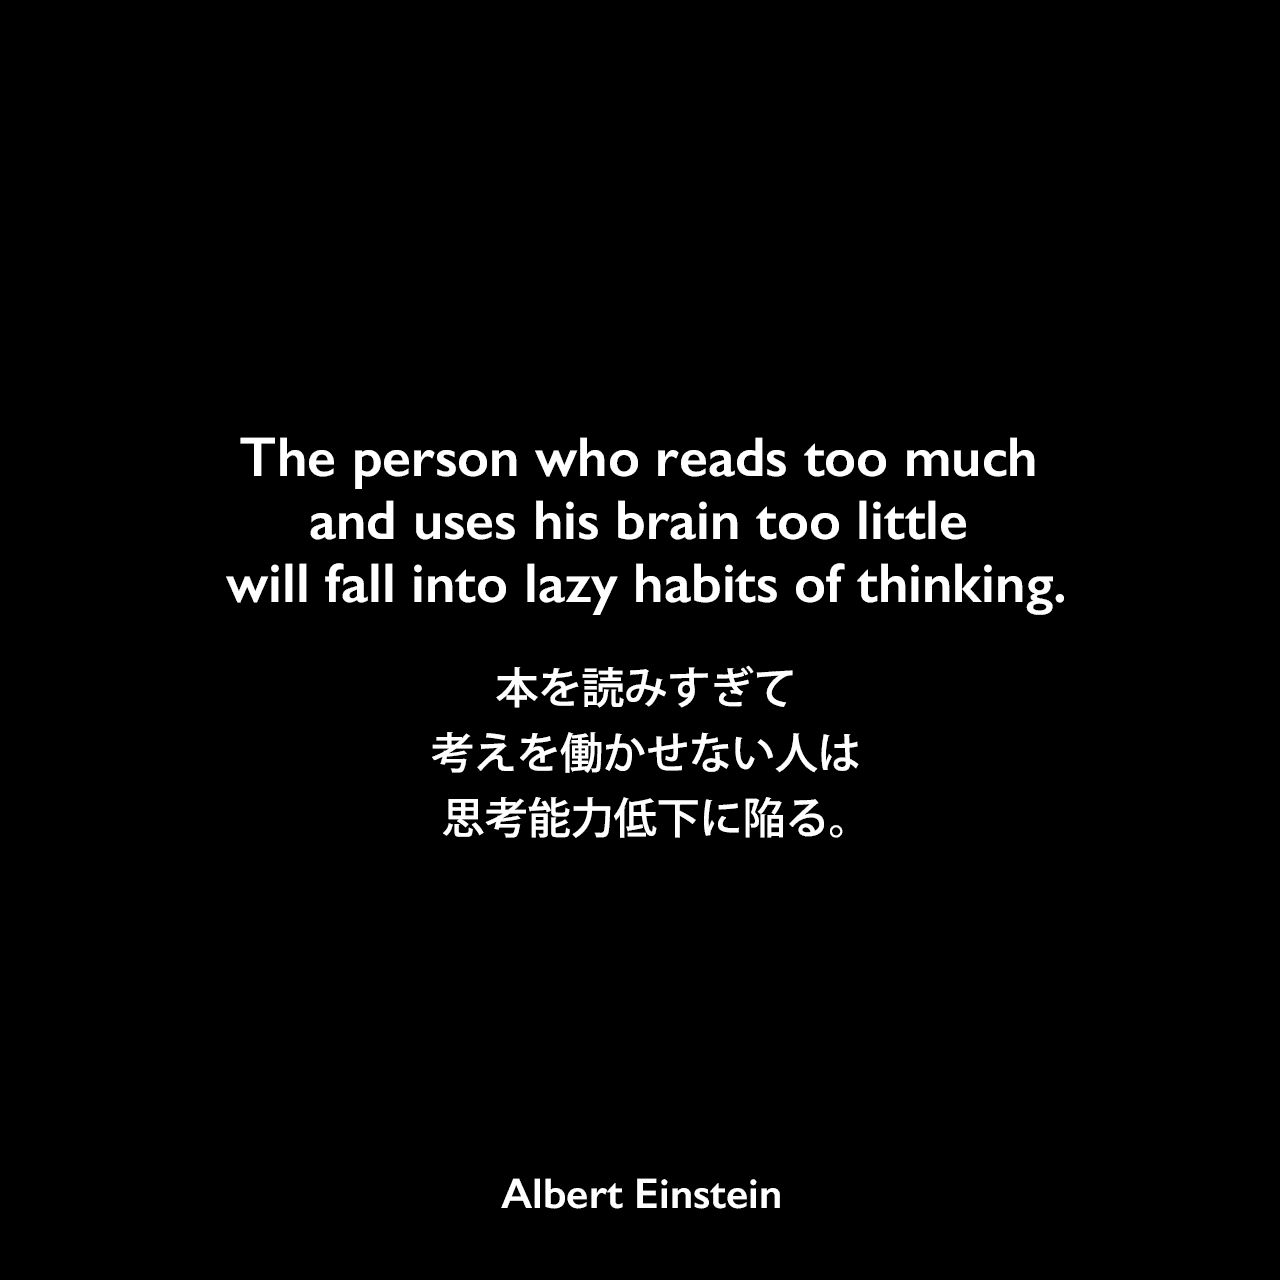 The person who reads too much and uses his brain too little will fall into lazy habits of thinking.本を読みすぎて考えを働かせない人は、思考能力低下に陥る。- M. K. Wisehartとのインタビュー(1930年)よりAlbert Einstein